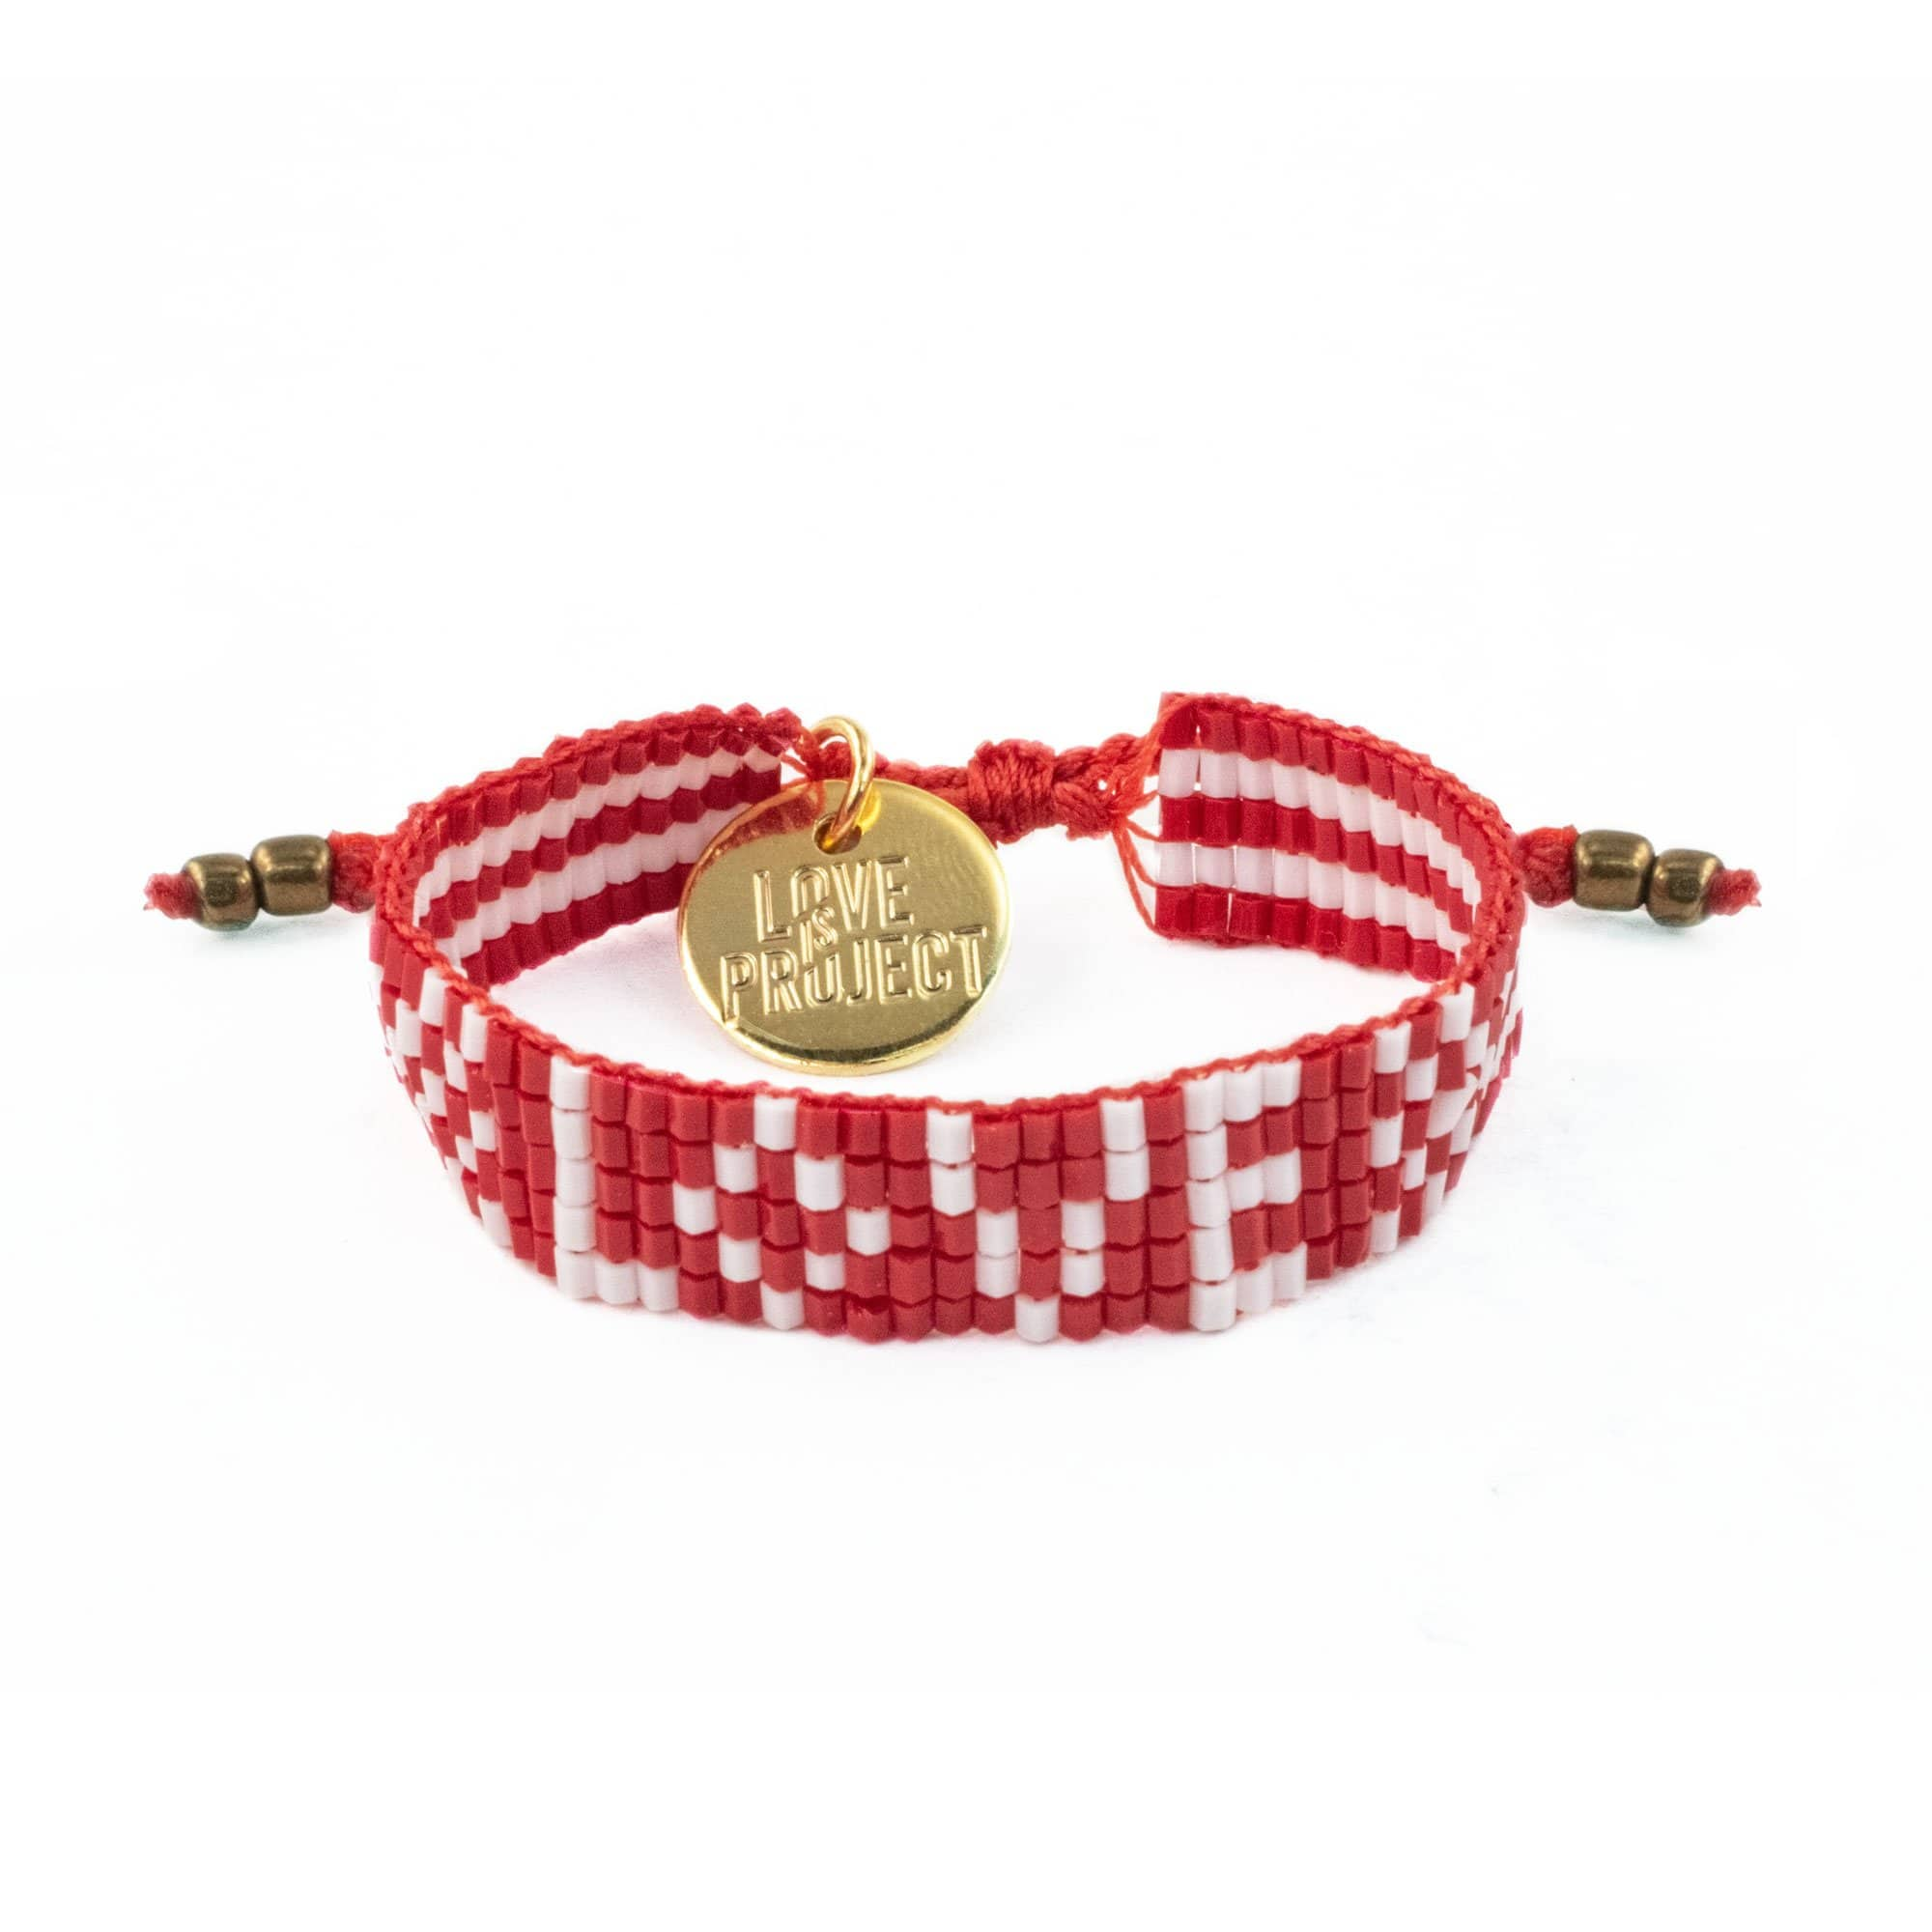 Kids' Seed Bead LOVE Bracelet - Red